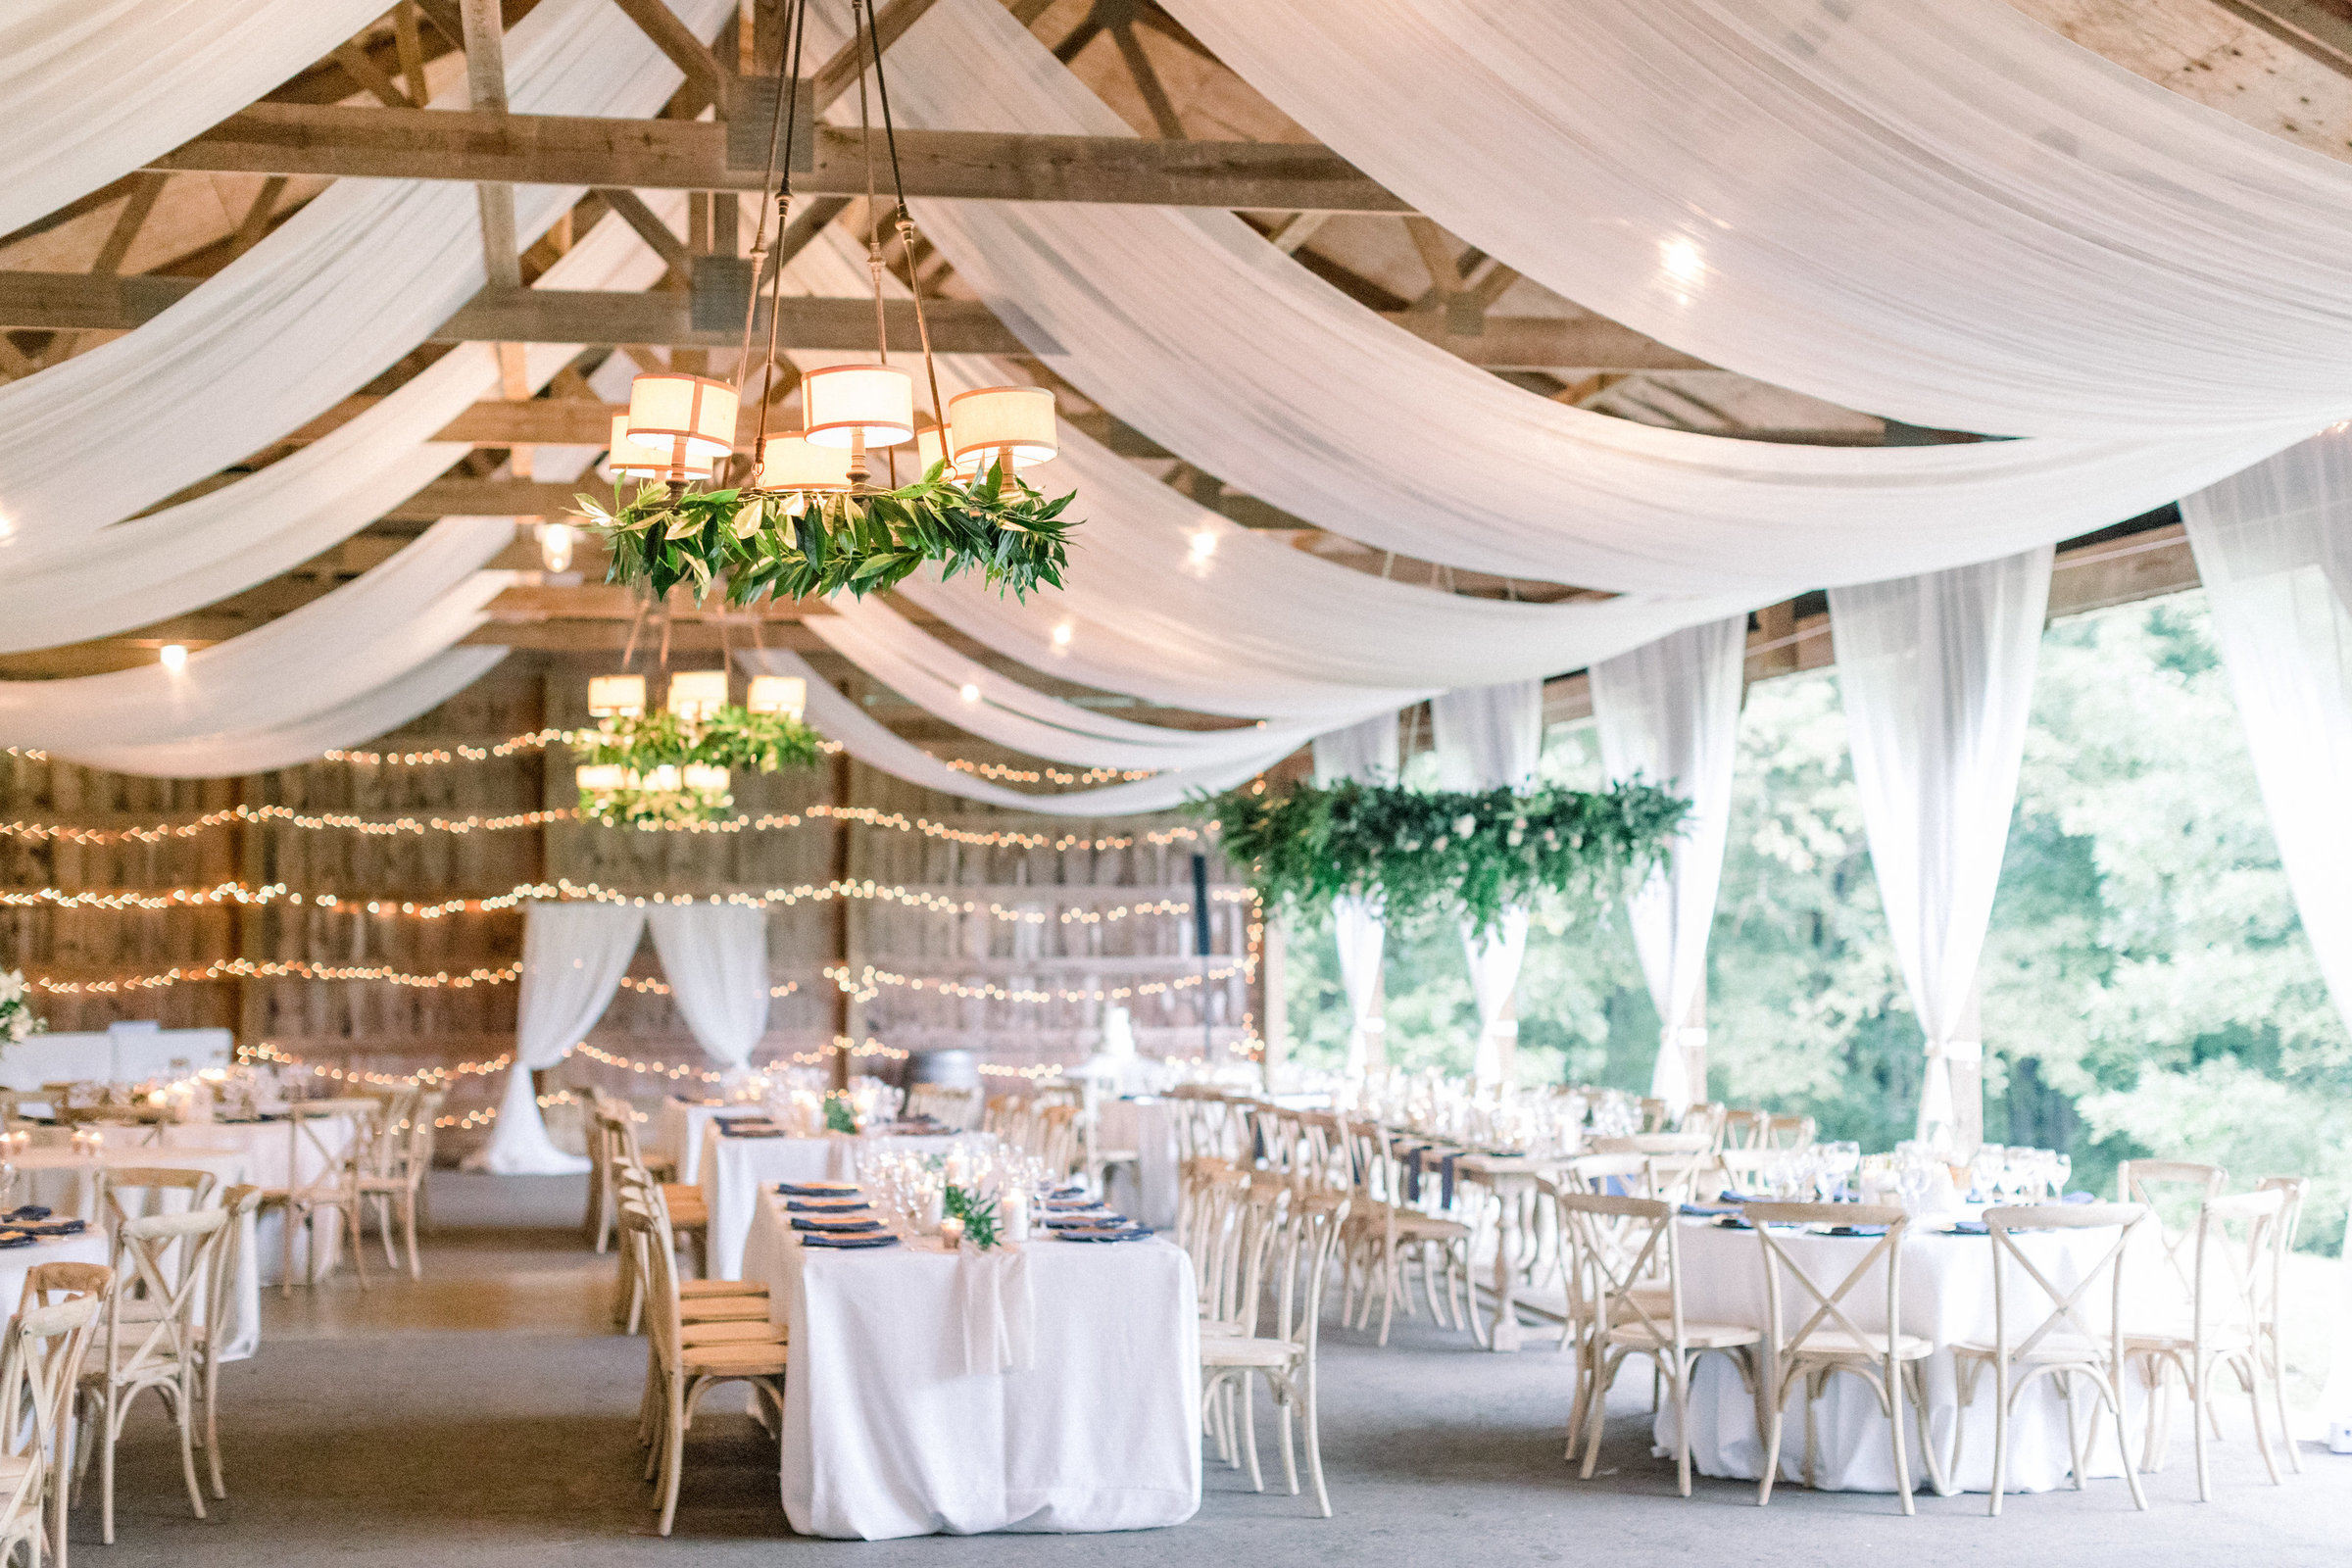 Elegant Barn Reception designed by Cleveland Ohio's Best Wedding Planner